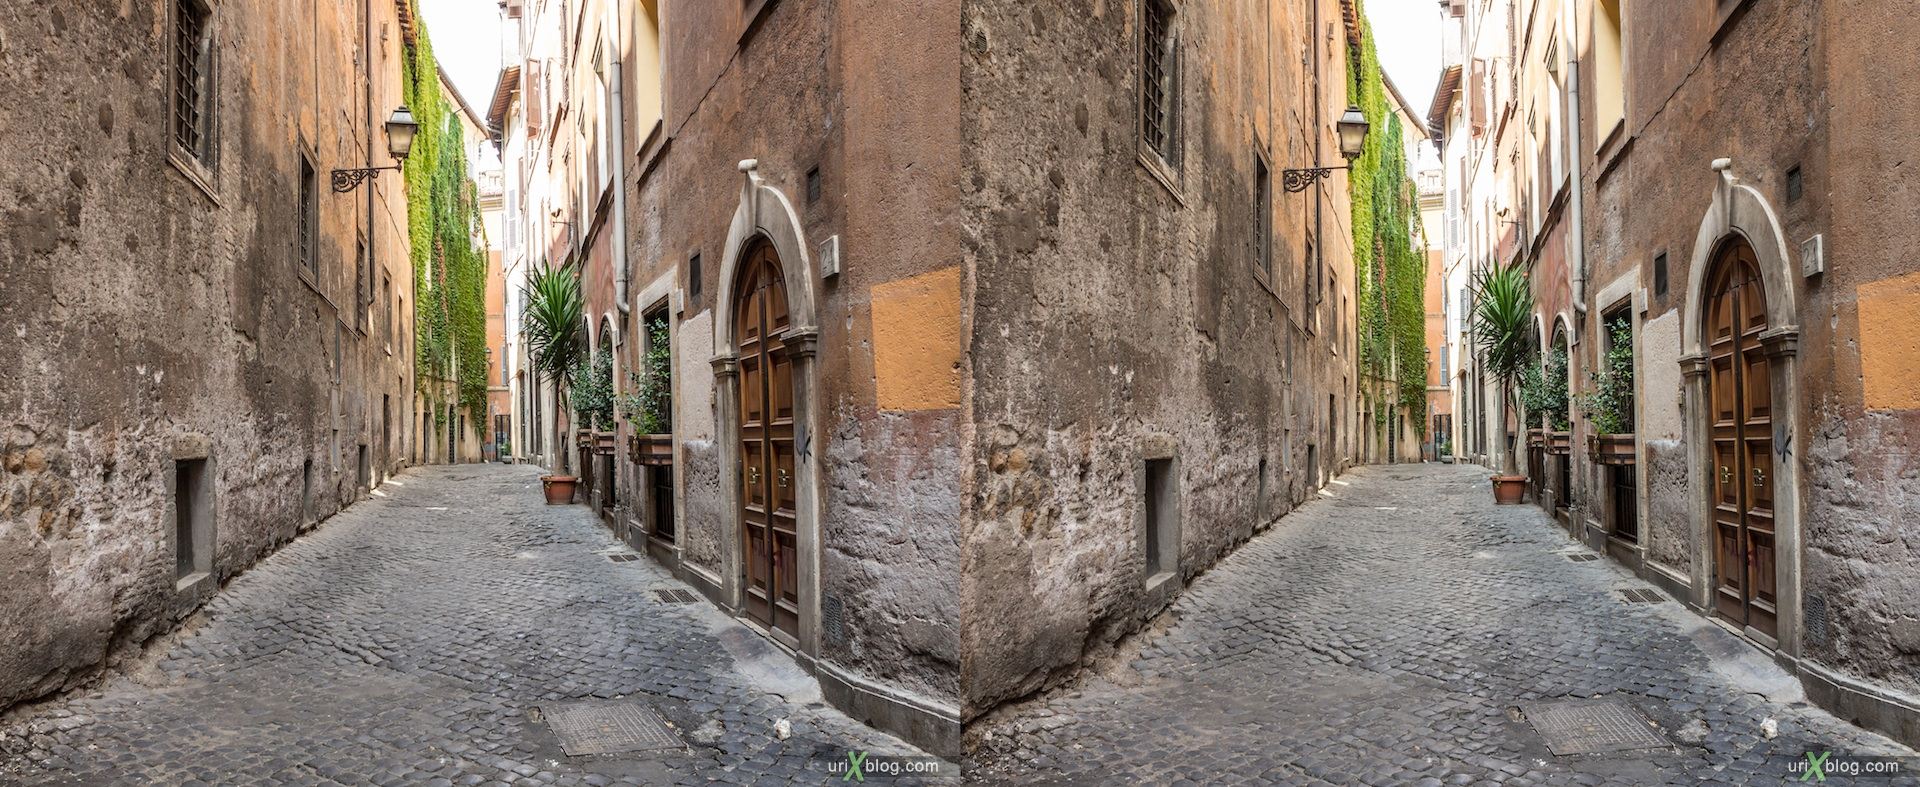 2012, vicolo della Volpe street, 3D, stereo pair, cross-eyed, crossview, cross view stereo pair